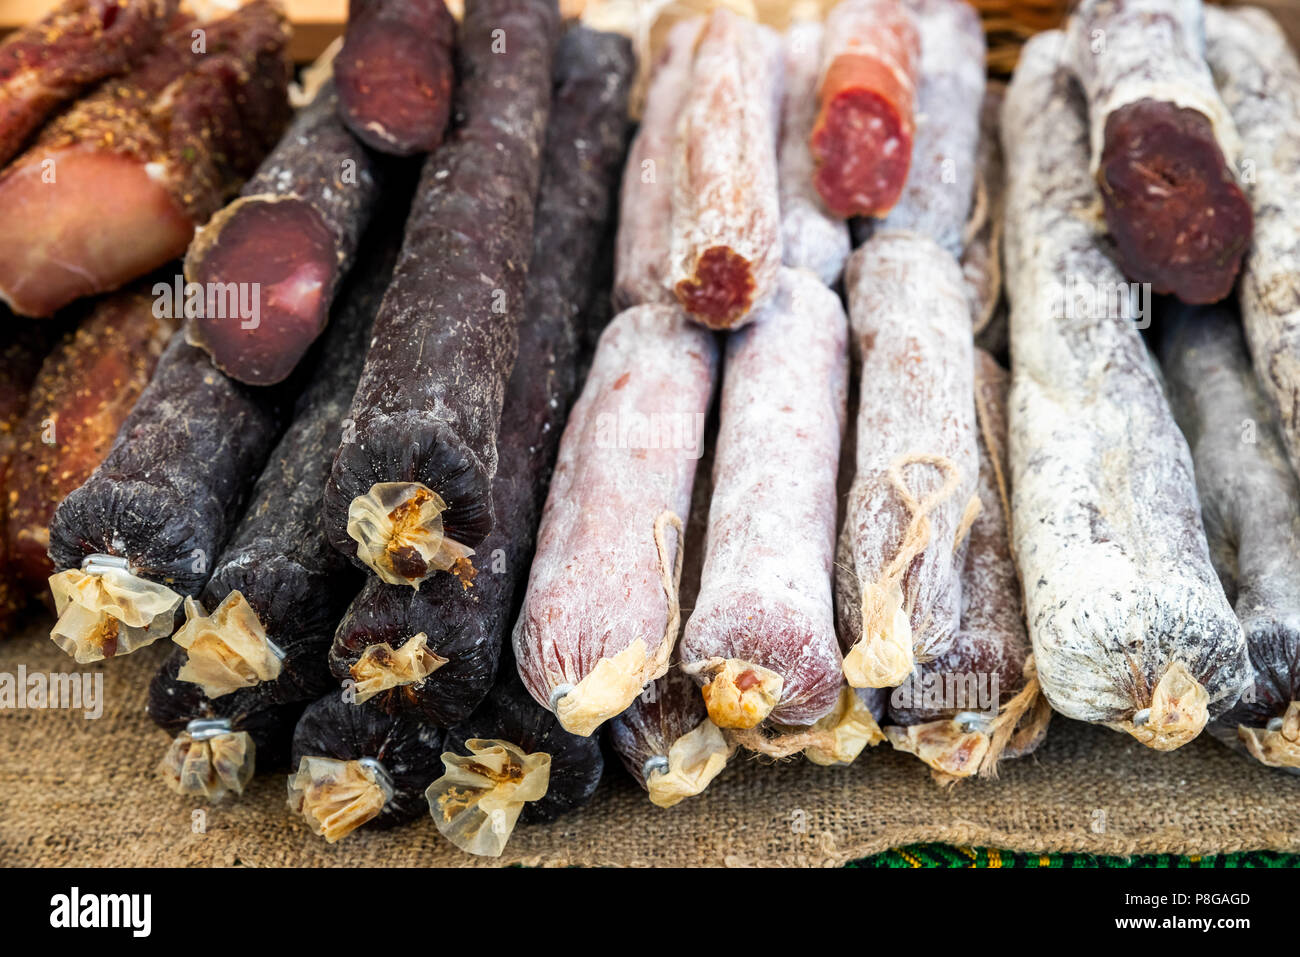 A lot of smoked sausage in the store - Stock Image